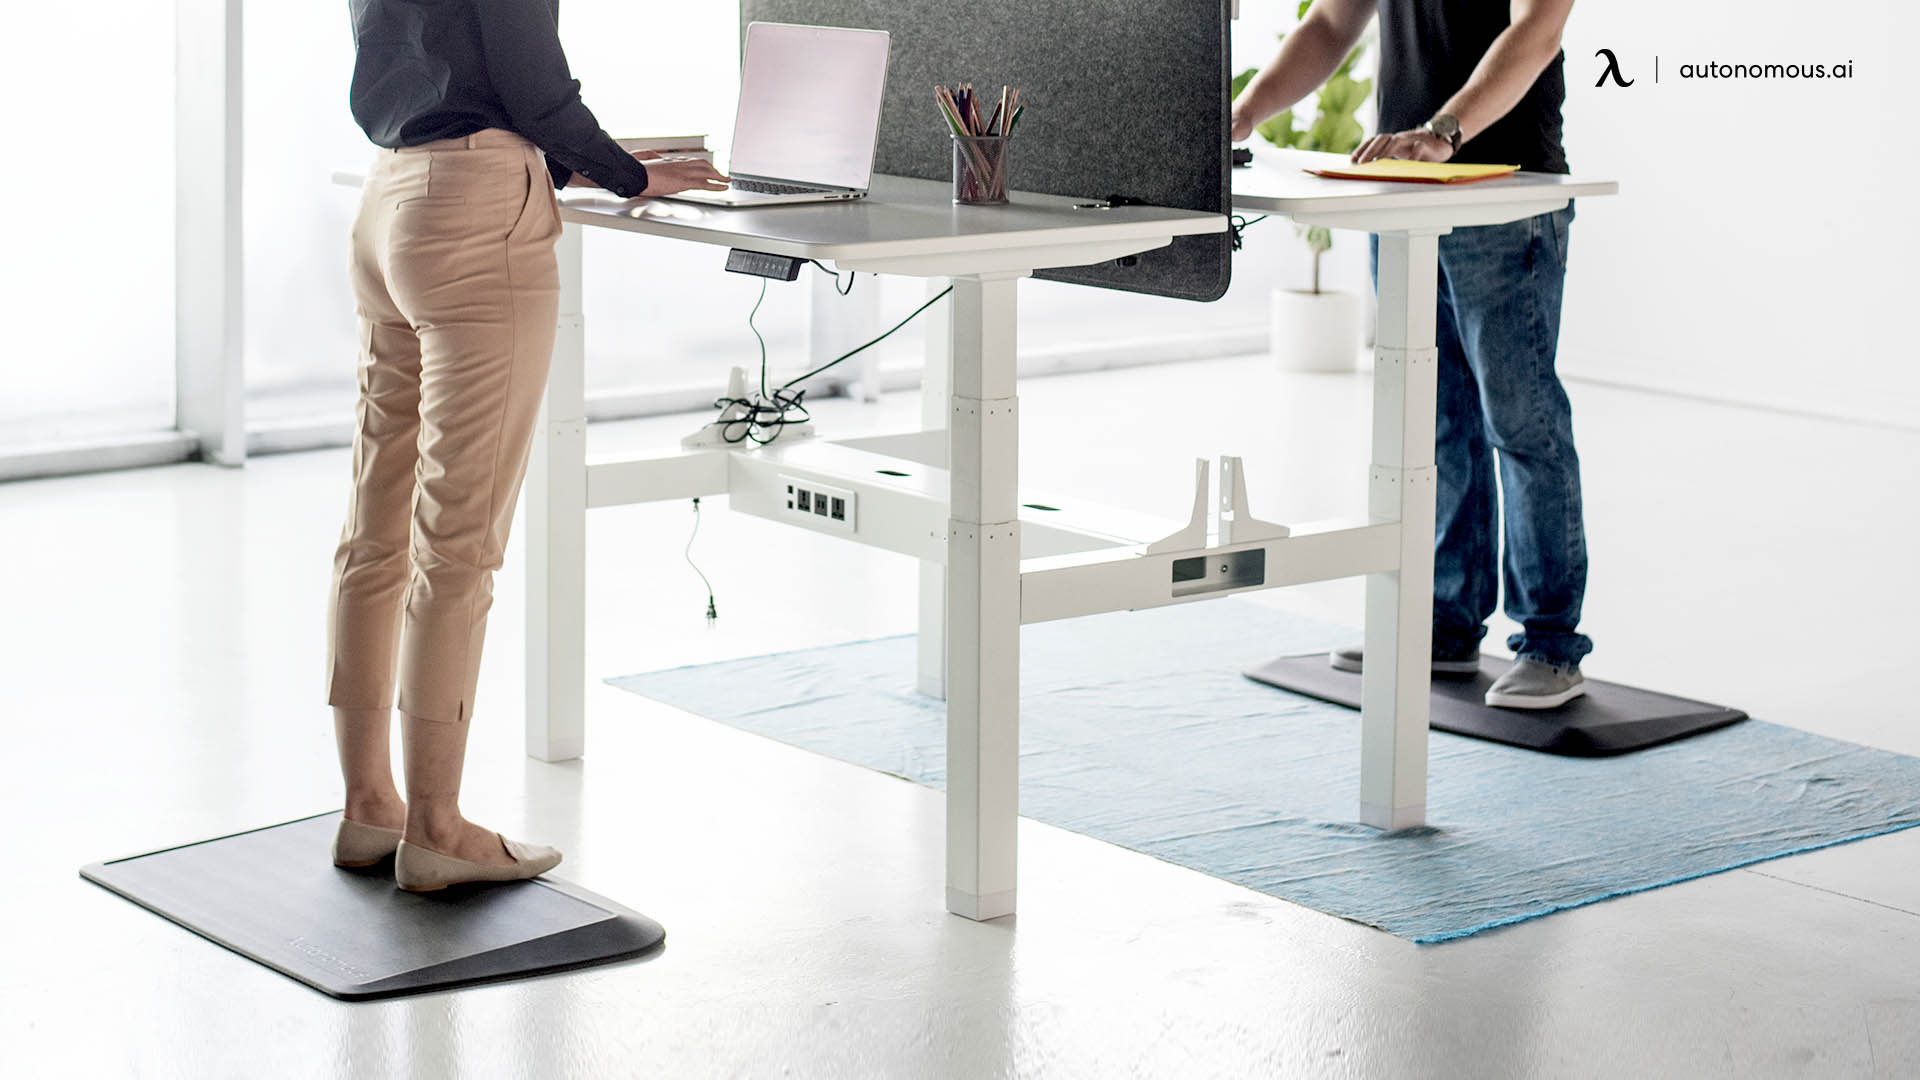 Why Should You Combine Anti-Fatigue with a Standing Desk?